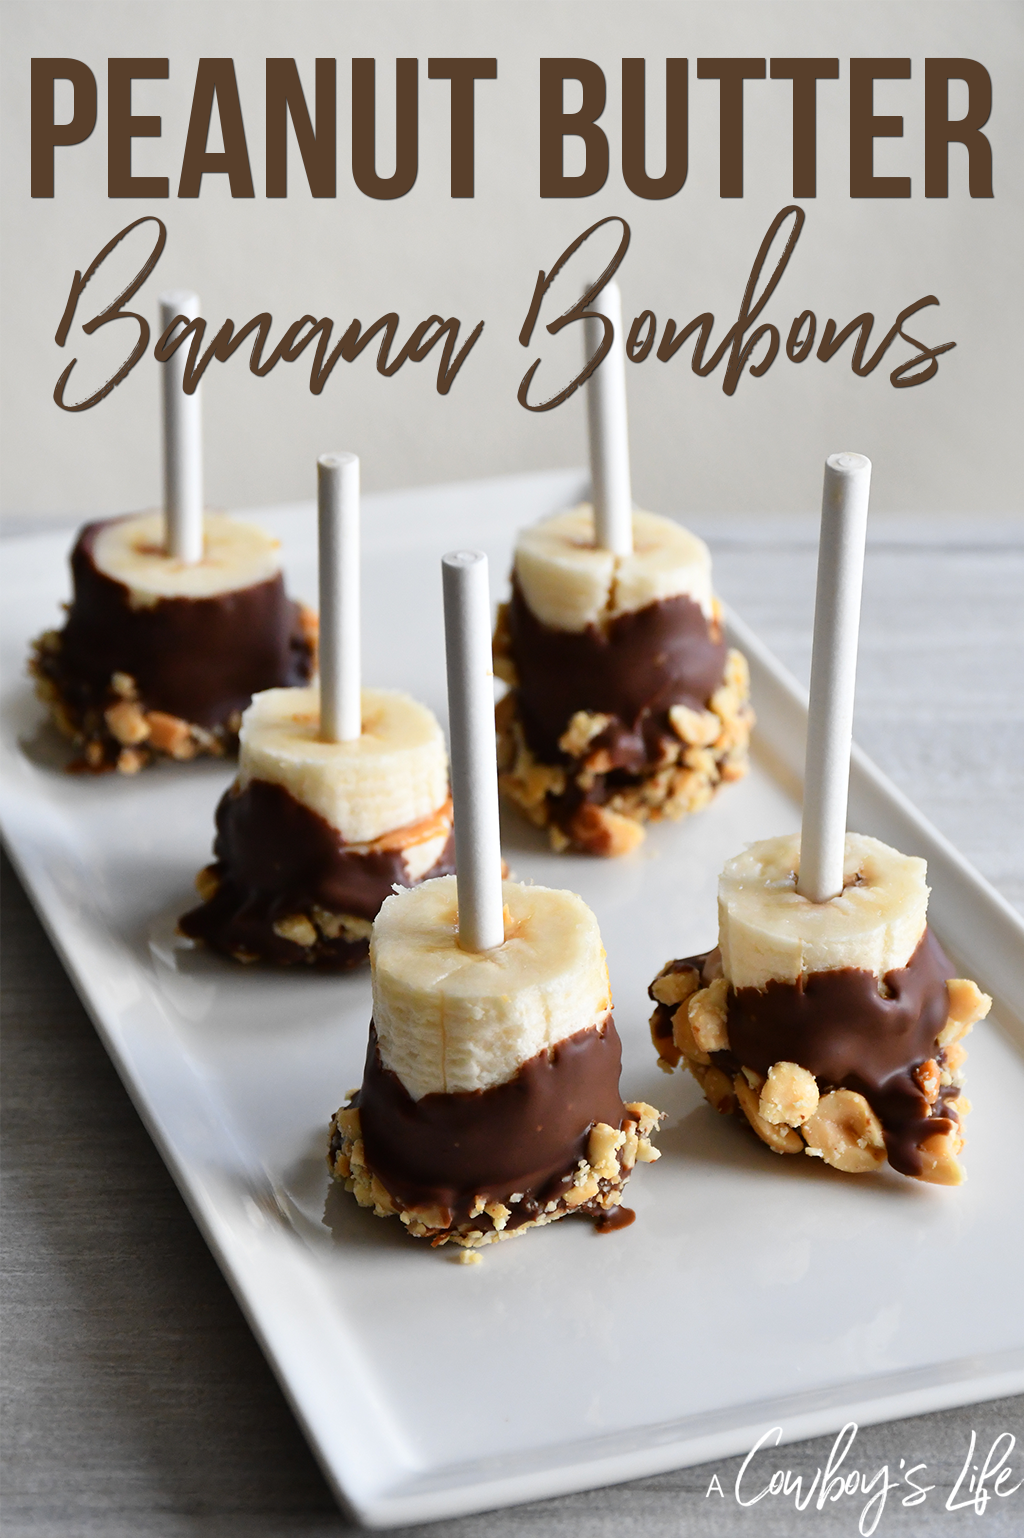 How to make Peanut Butter Banana Bonbons